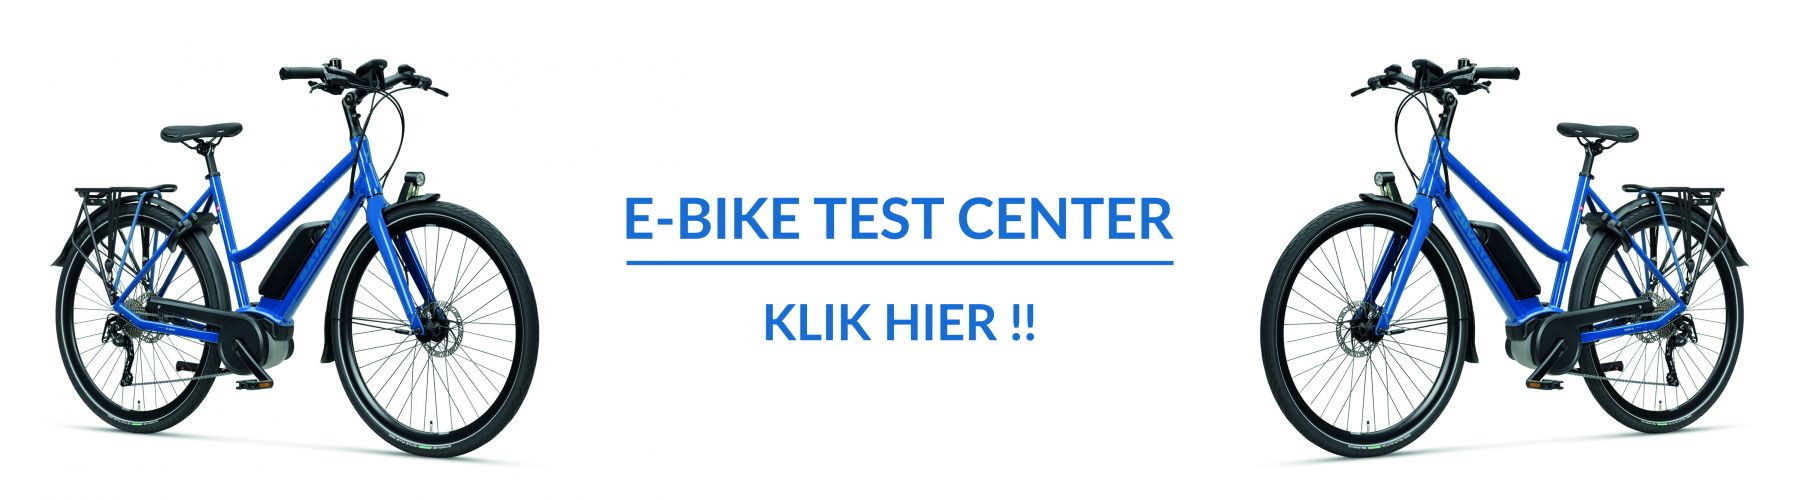 Pagina 2 (ebike test center)